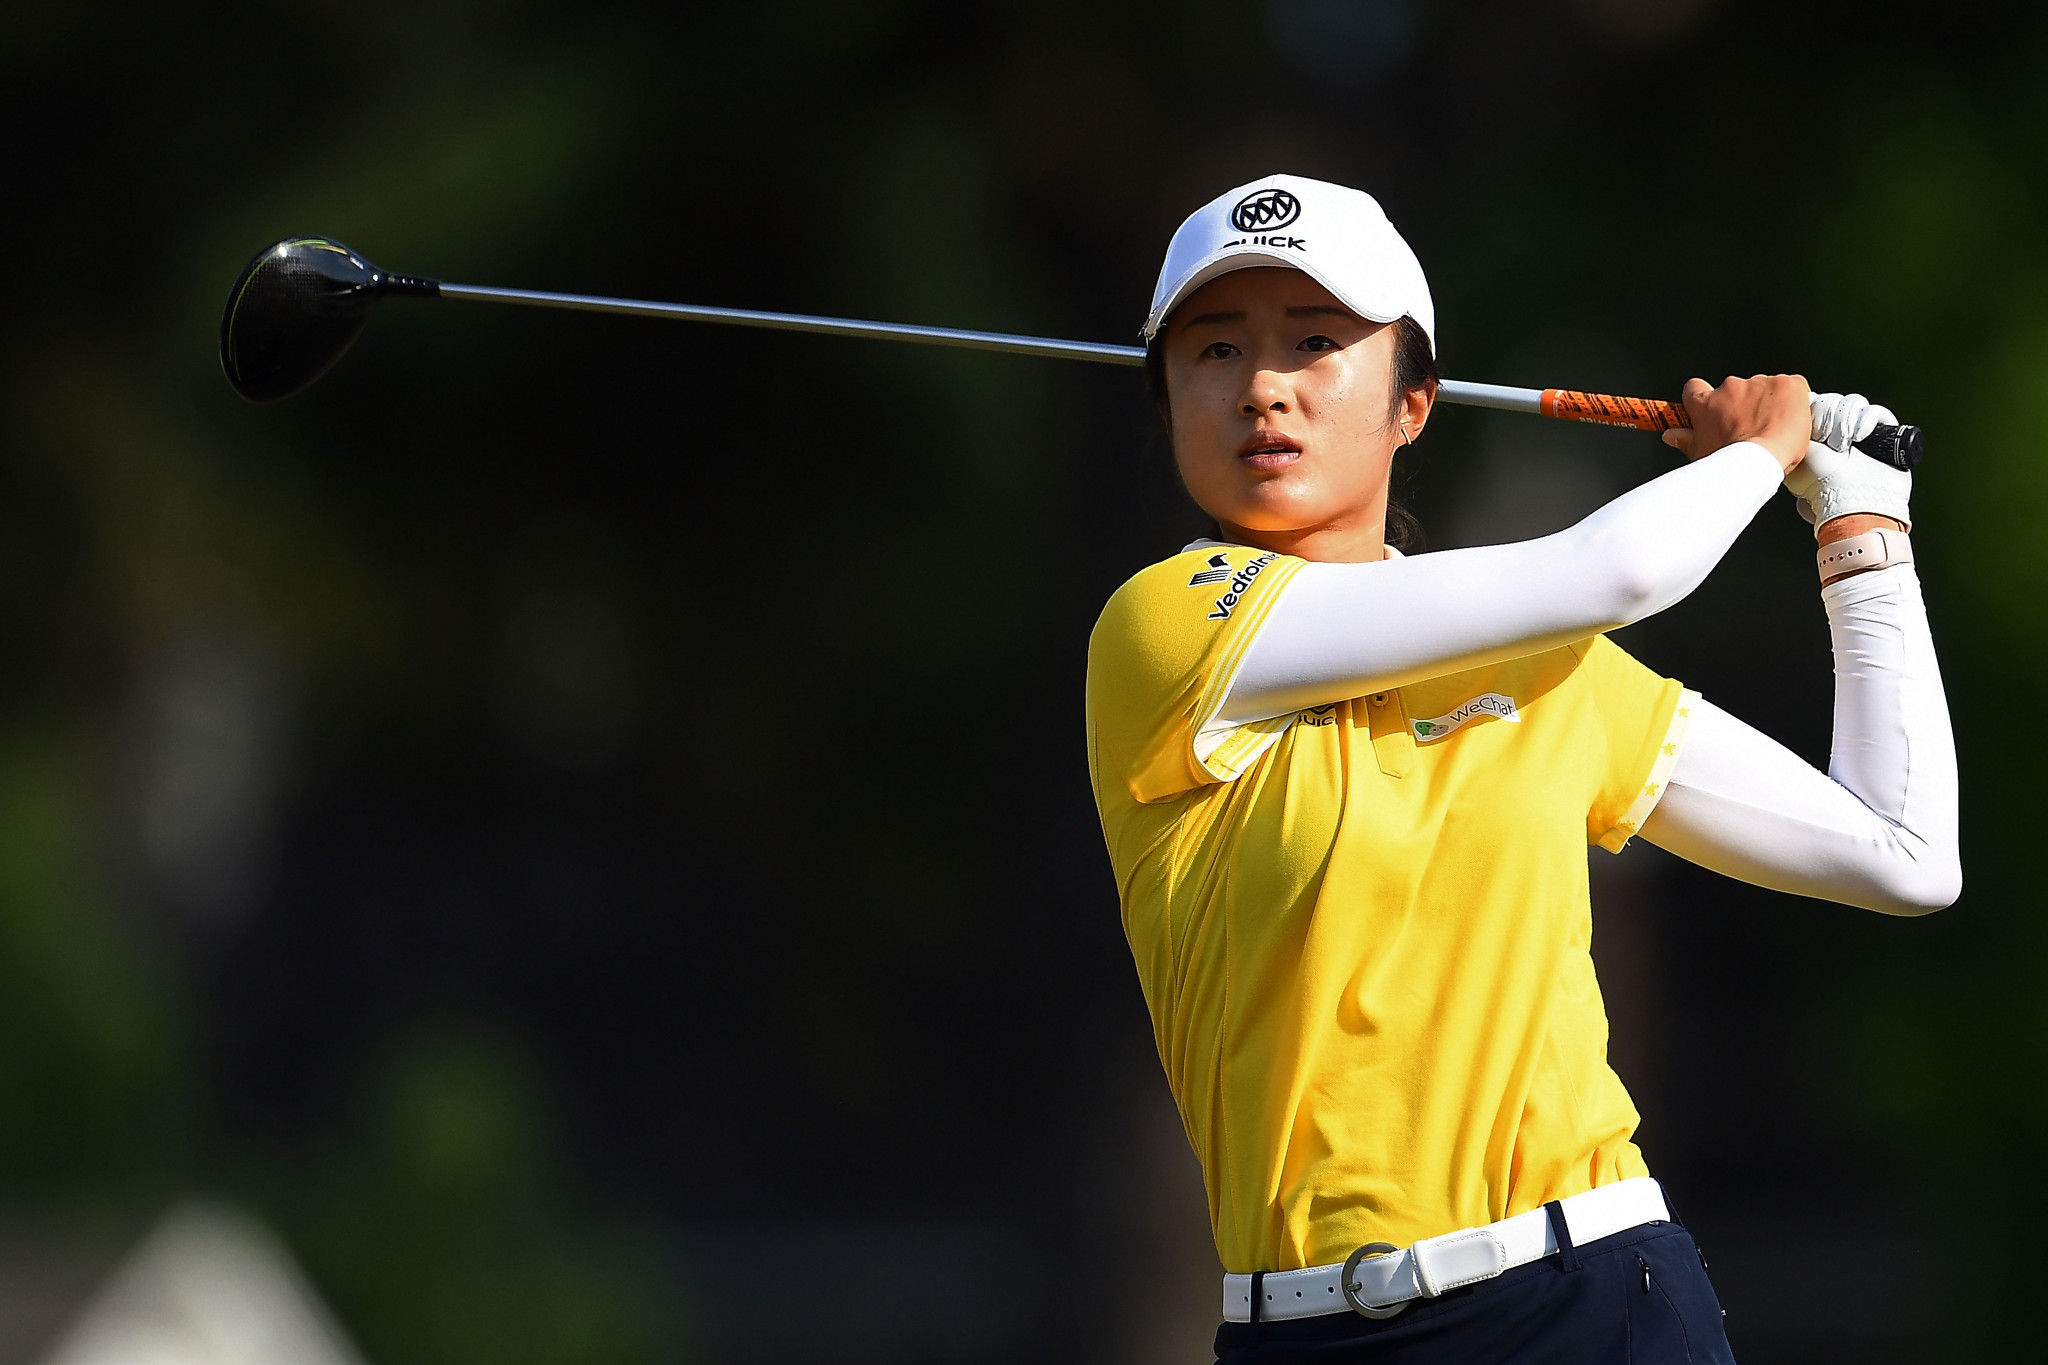 Debutant Liu and Boutier tied for lead at US Women's Open